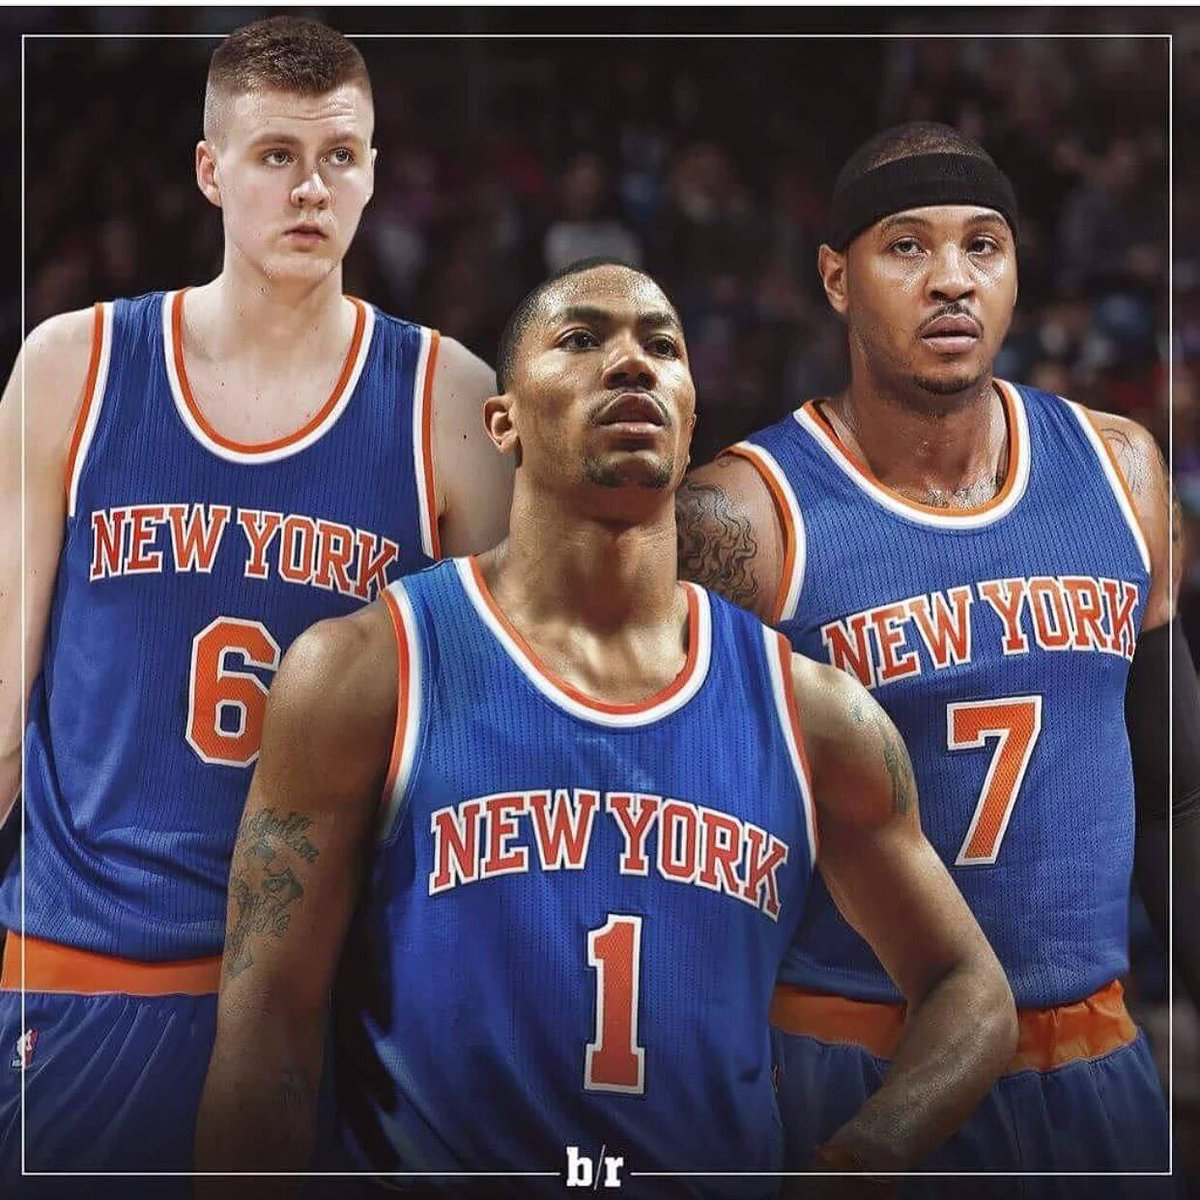 The knicks may make a run in the playoffs barring injuries. https://t.co/Cj7SVr4ZWy